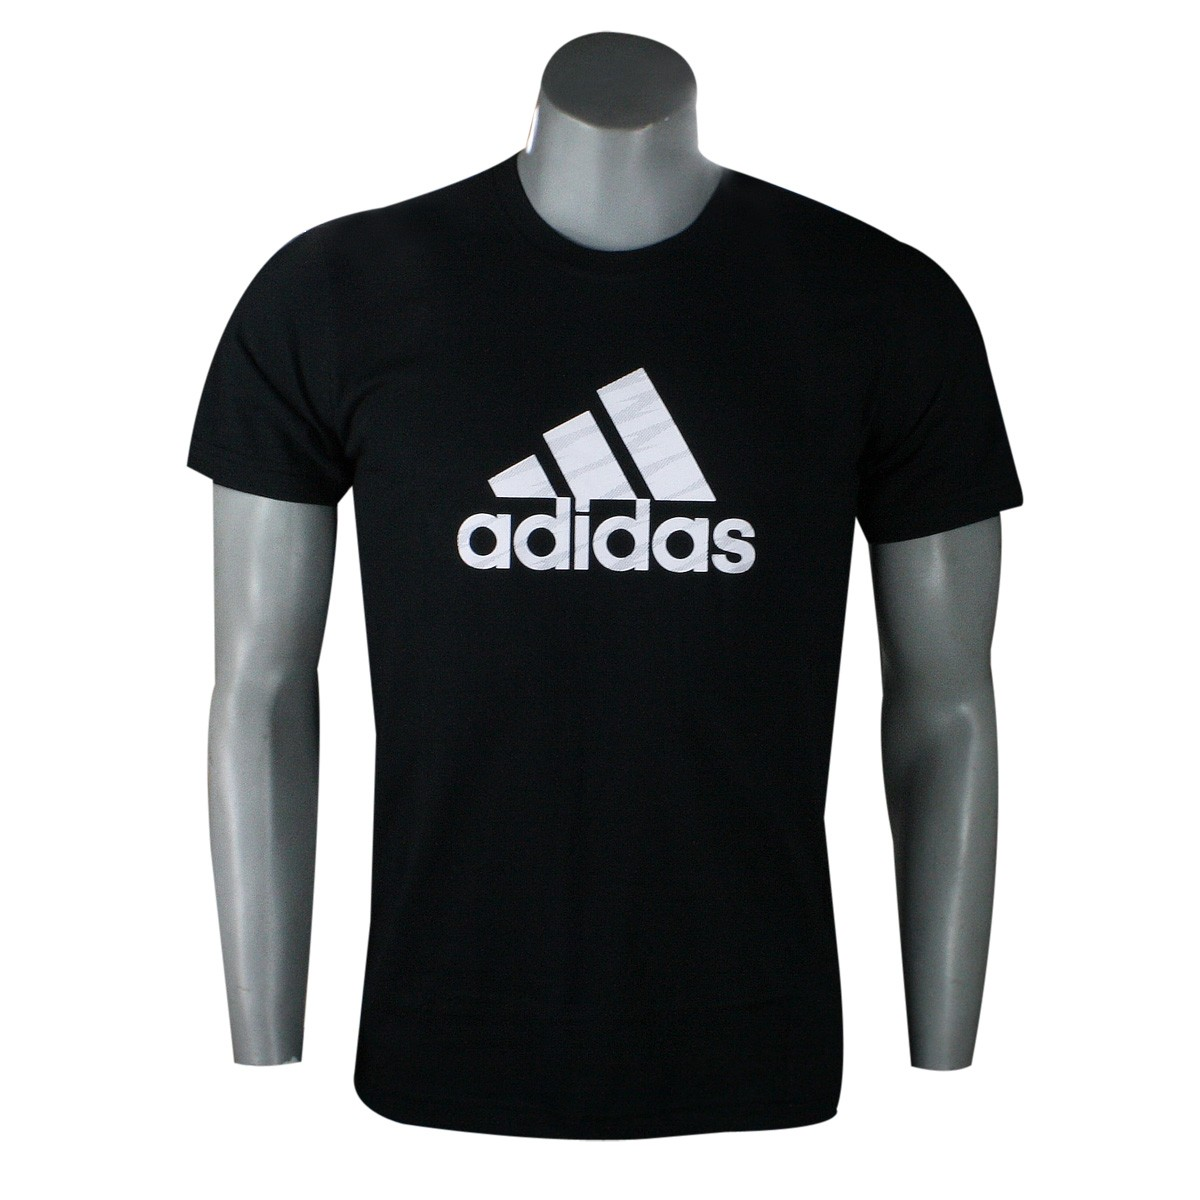 b20de971b9 Camiseta Adidas MC Graphic BS4285 Preto Branco